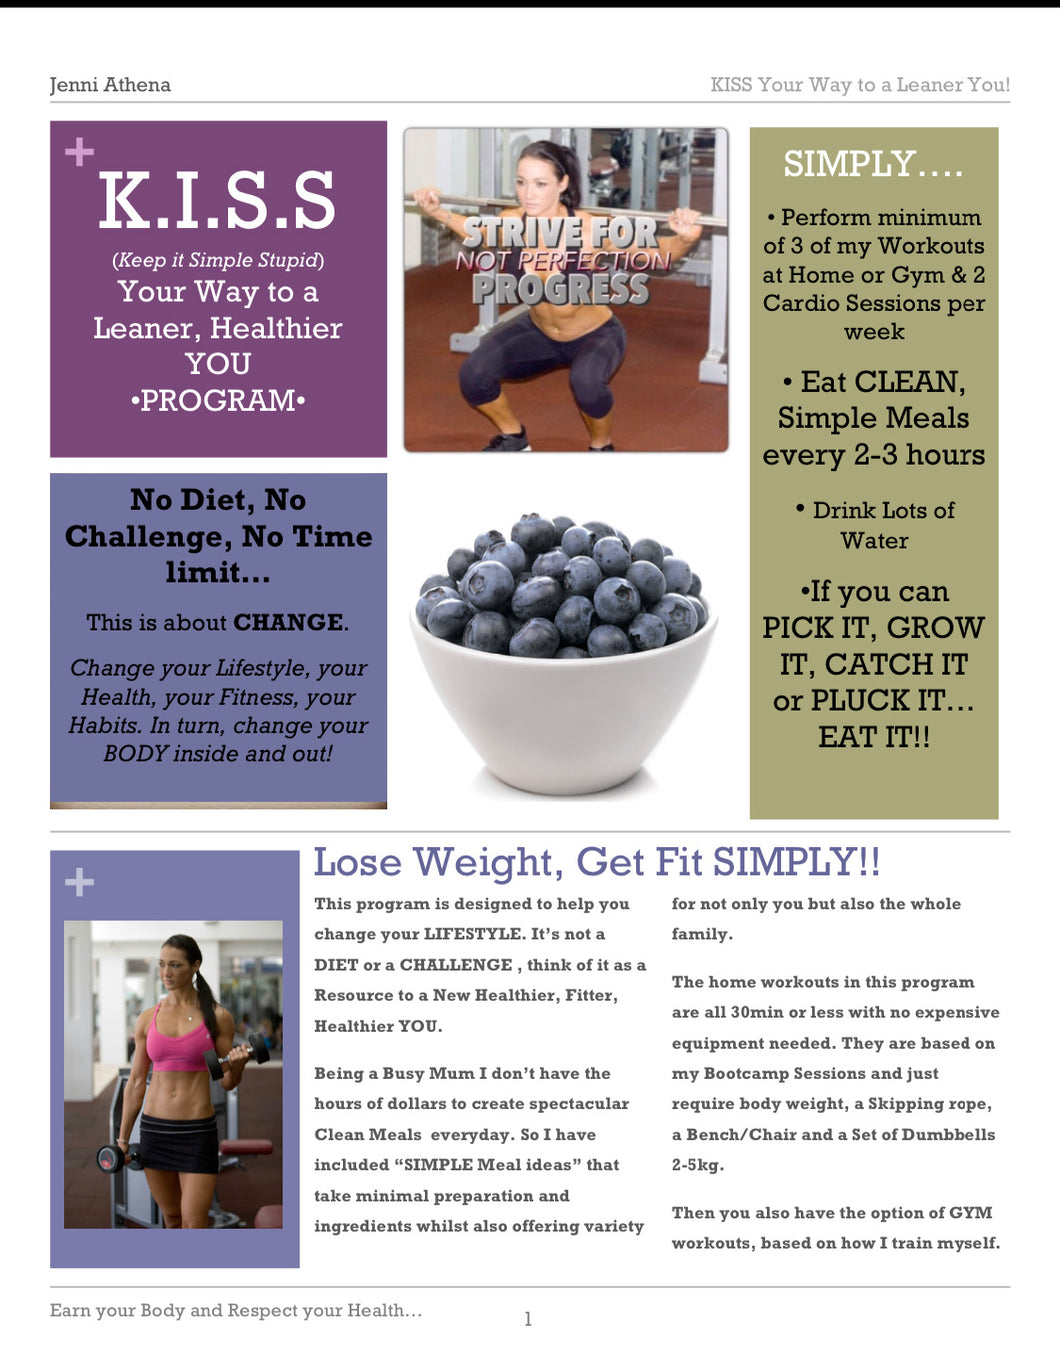 KISS: a Guide to a Leaner You!